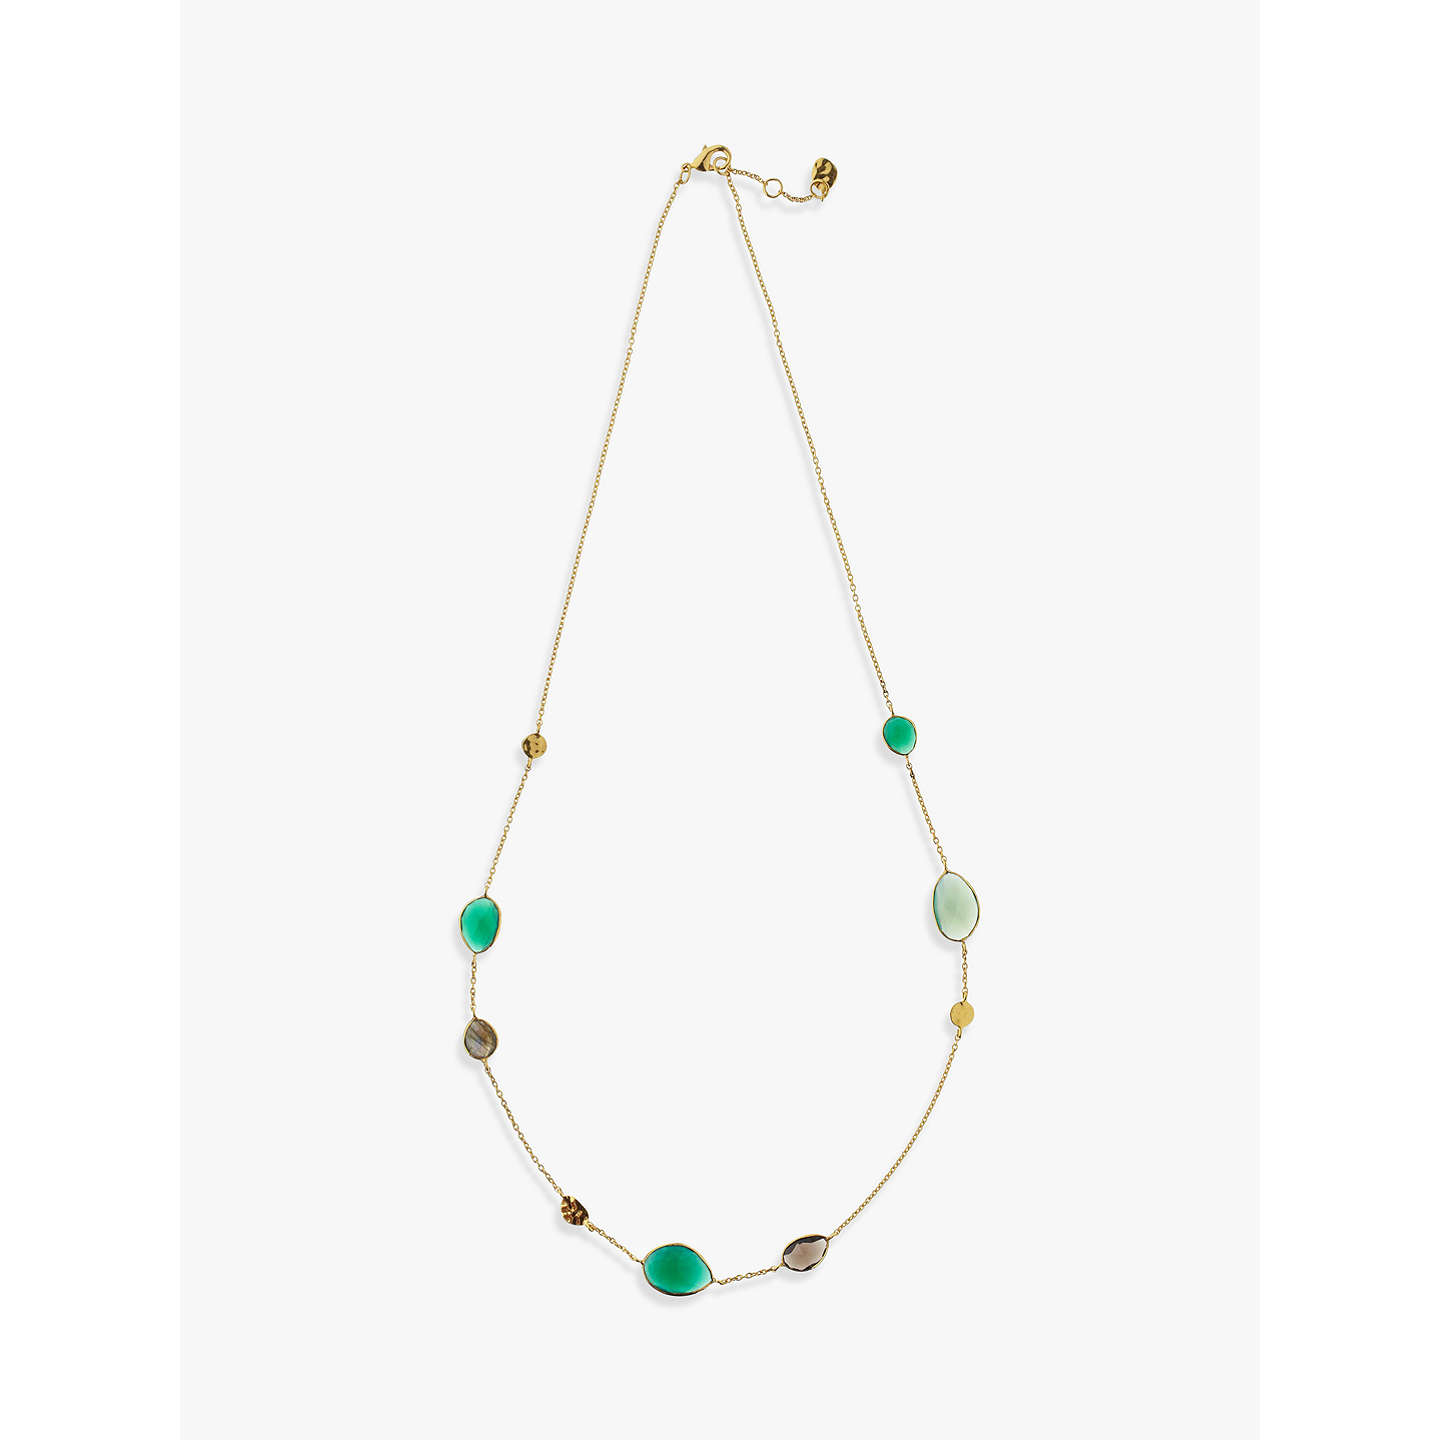 rosa angelo collections plated jewelry di the original onyx spirito gold silver green argentum necklace draped